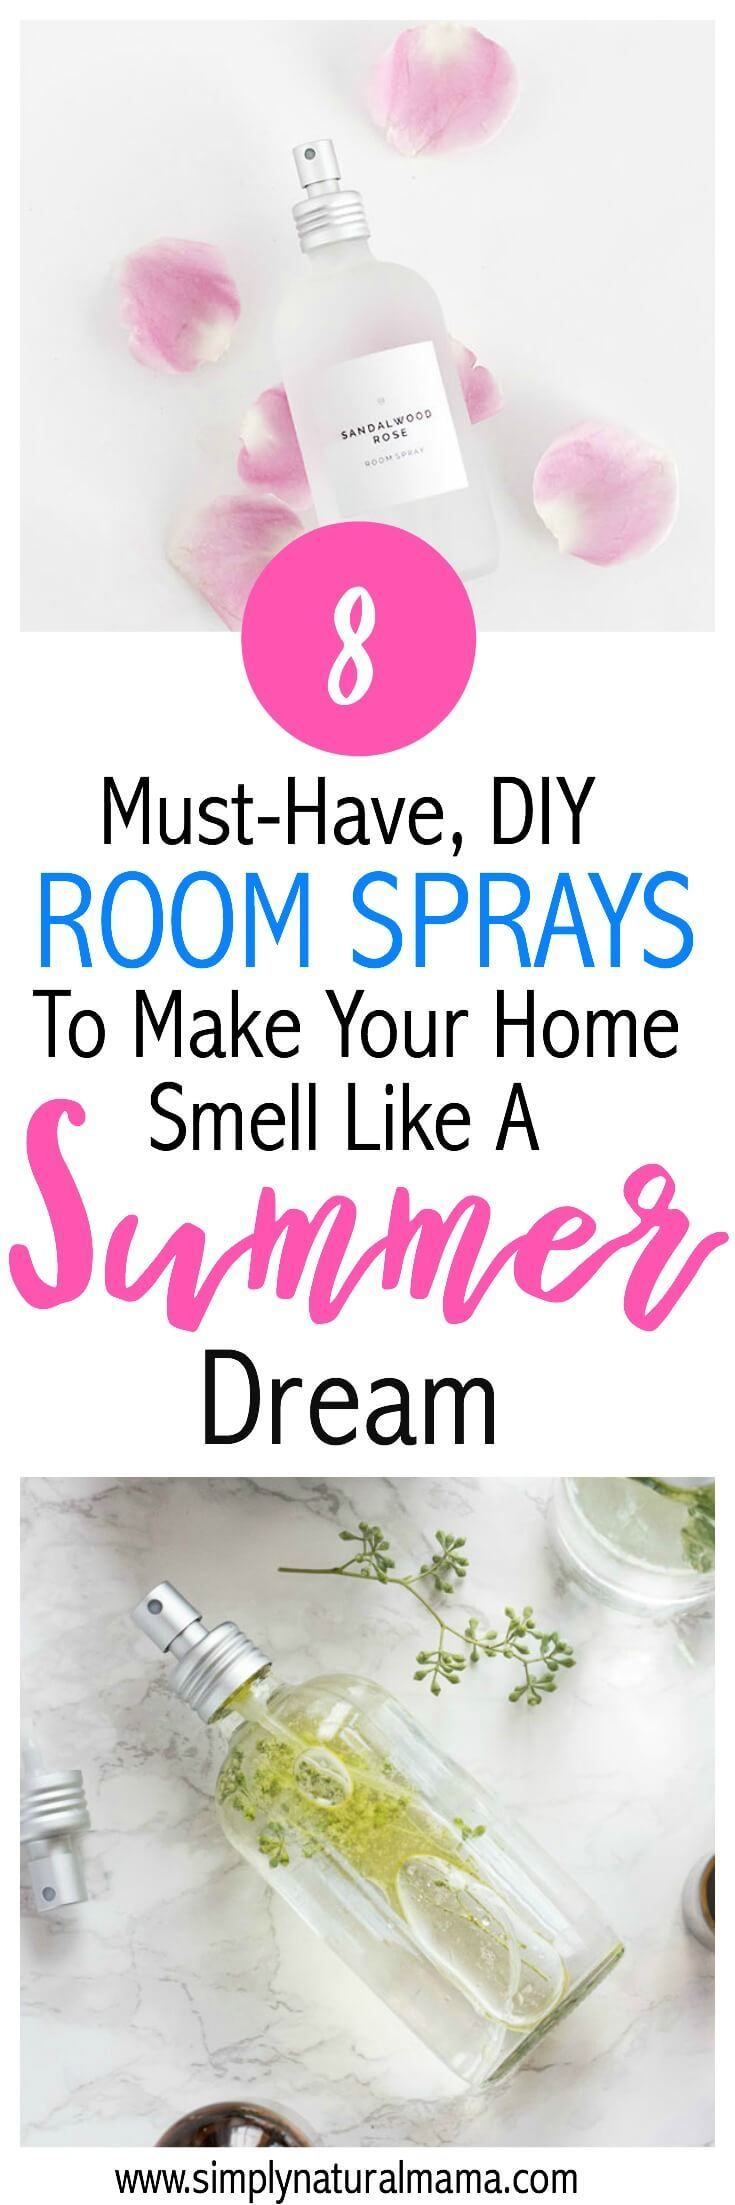 Wow! This was an awesome list of room sprays! I can't wait to make these this summer and have my house smell like a tropical getaway! via @simplynaturalma